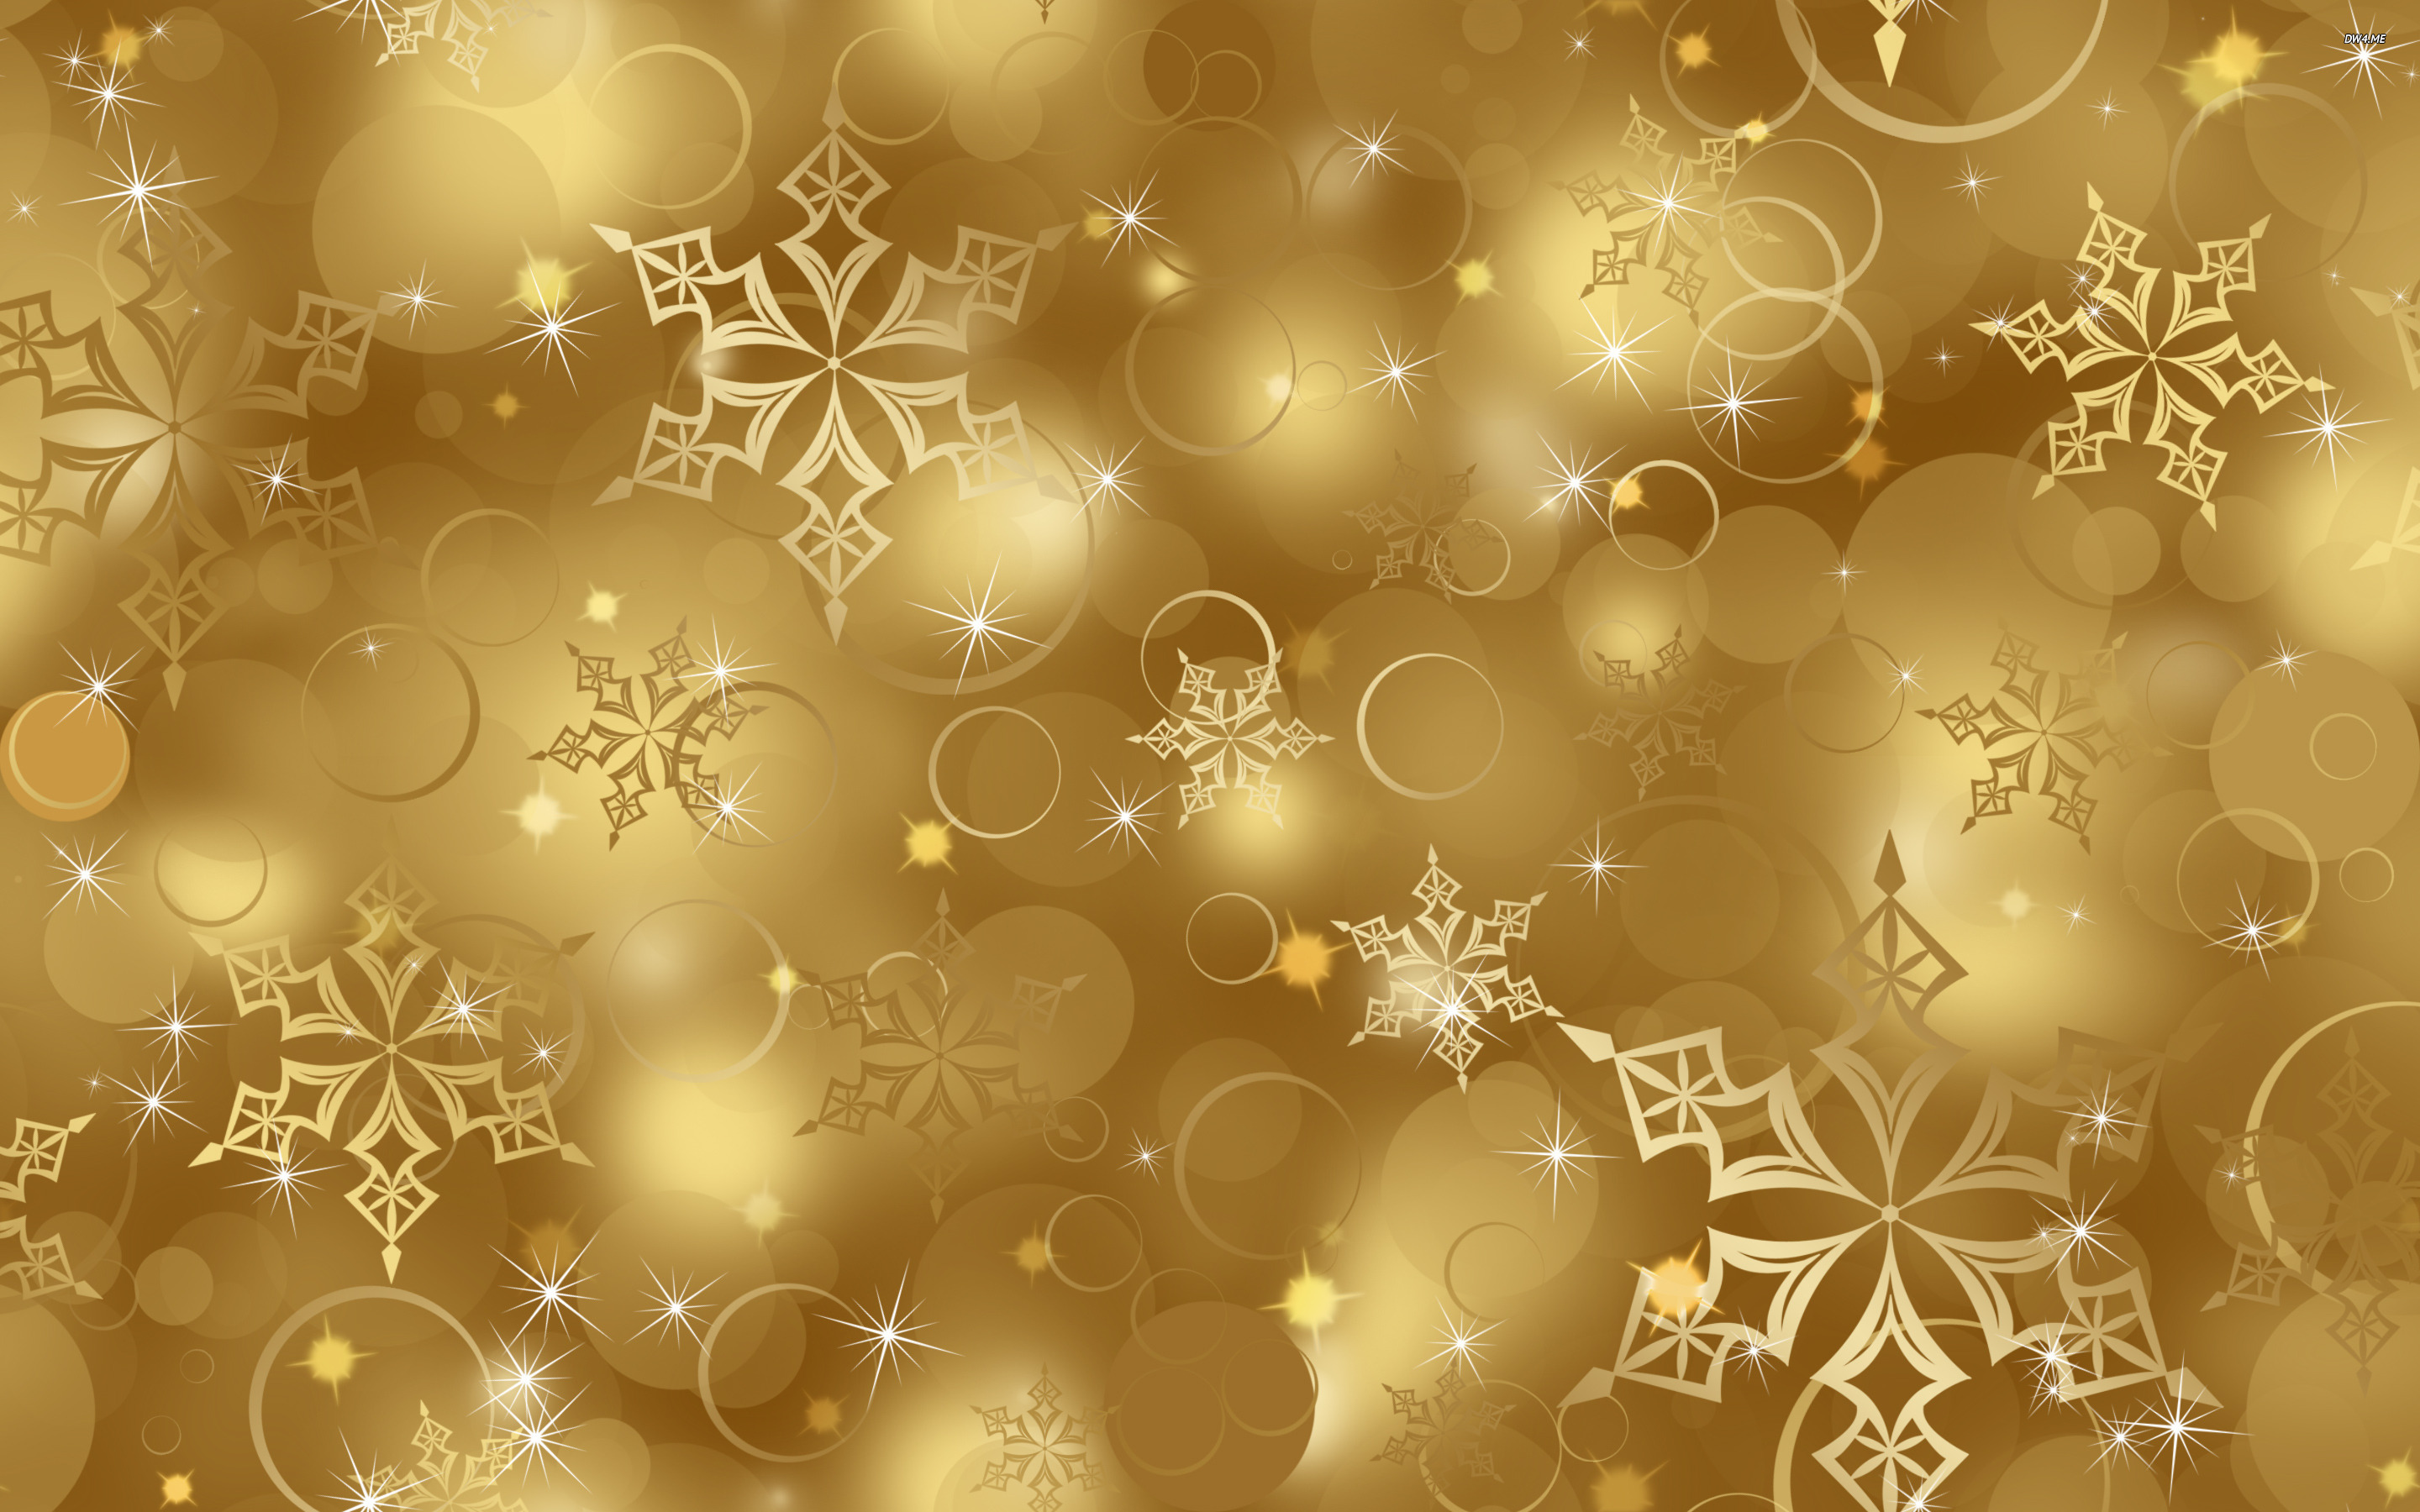 Golden Design Wallpaper : Gold stars wallpaper wallpapersafari